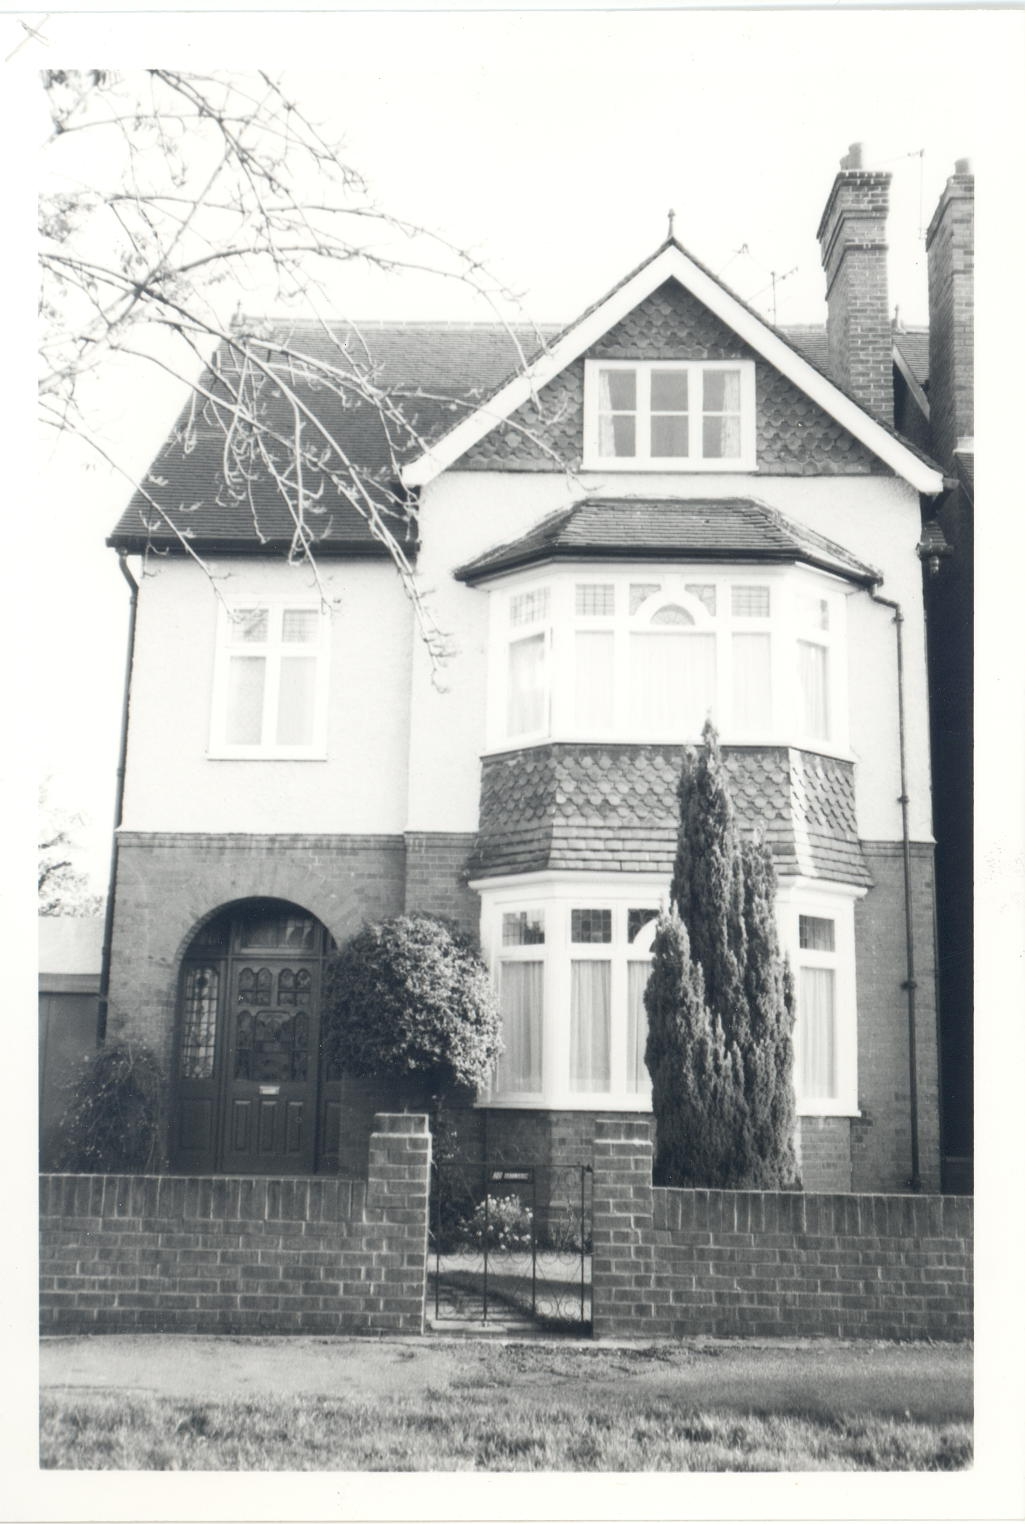 A black and white photograph of 20 Monument Green, taken in 1982—roughly 50 years after author E.M Forster's occupation of it in the 1920s.